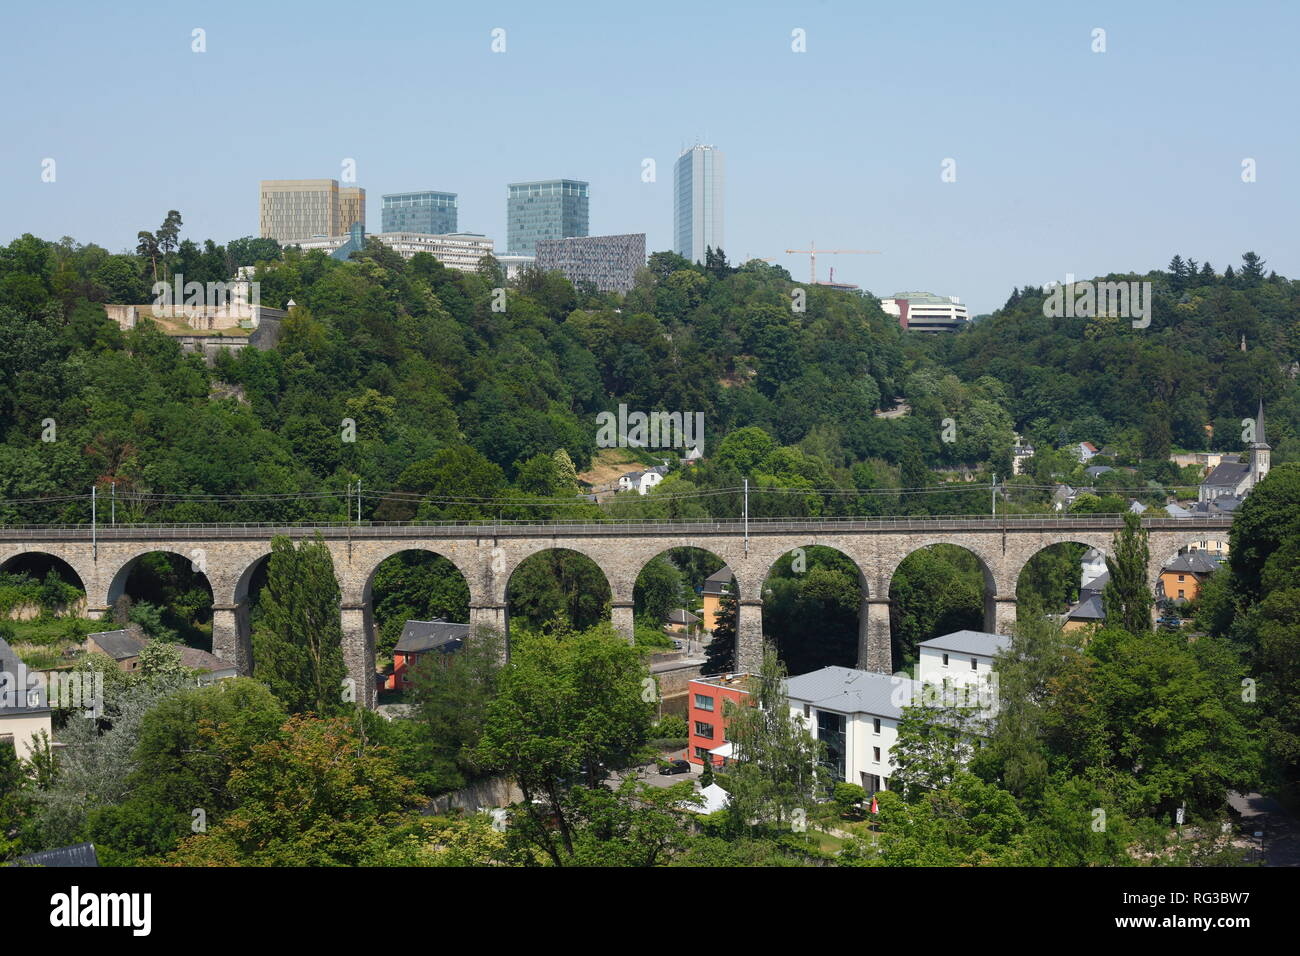 Viaduct in the Grund district, EU buildings, Kirchberg, European Centre, lower town, city Luxembourg, Luxembourg, Europe - Stock Image